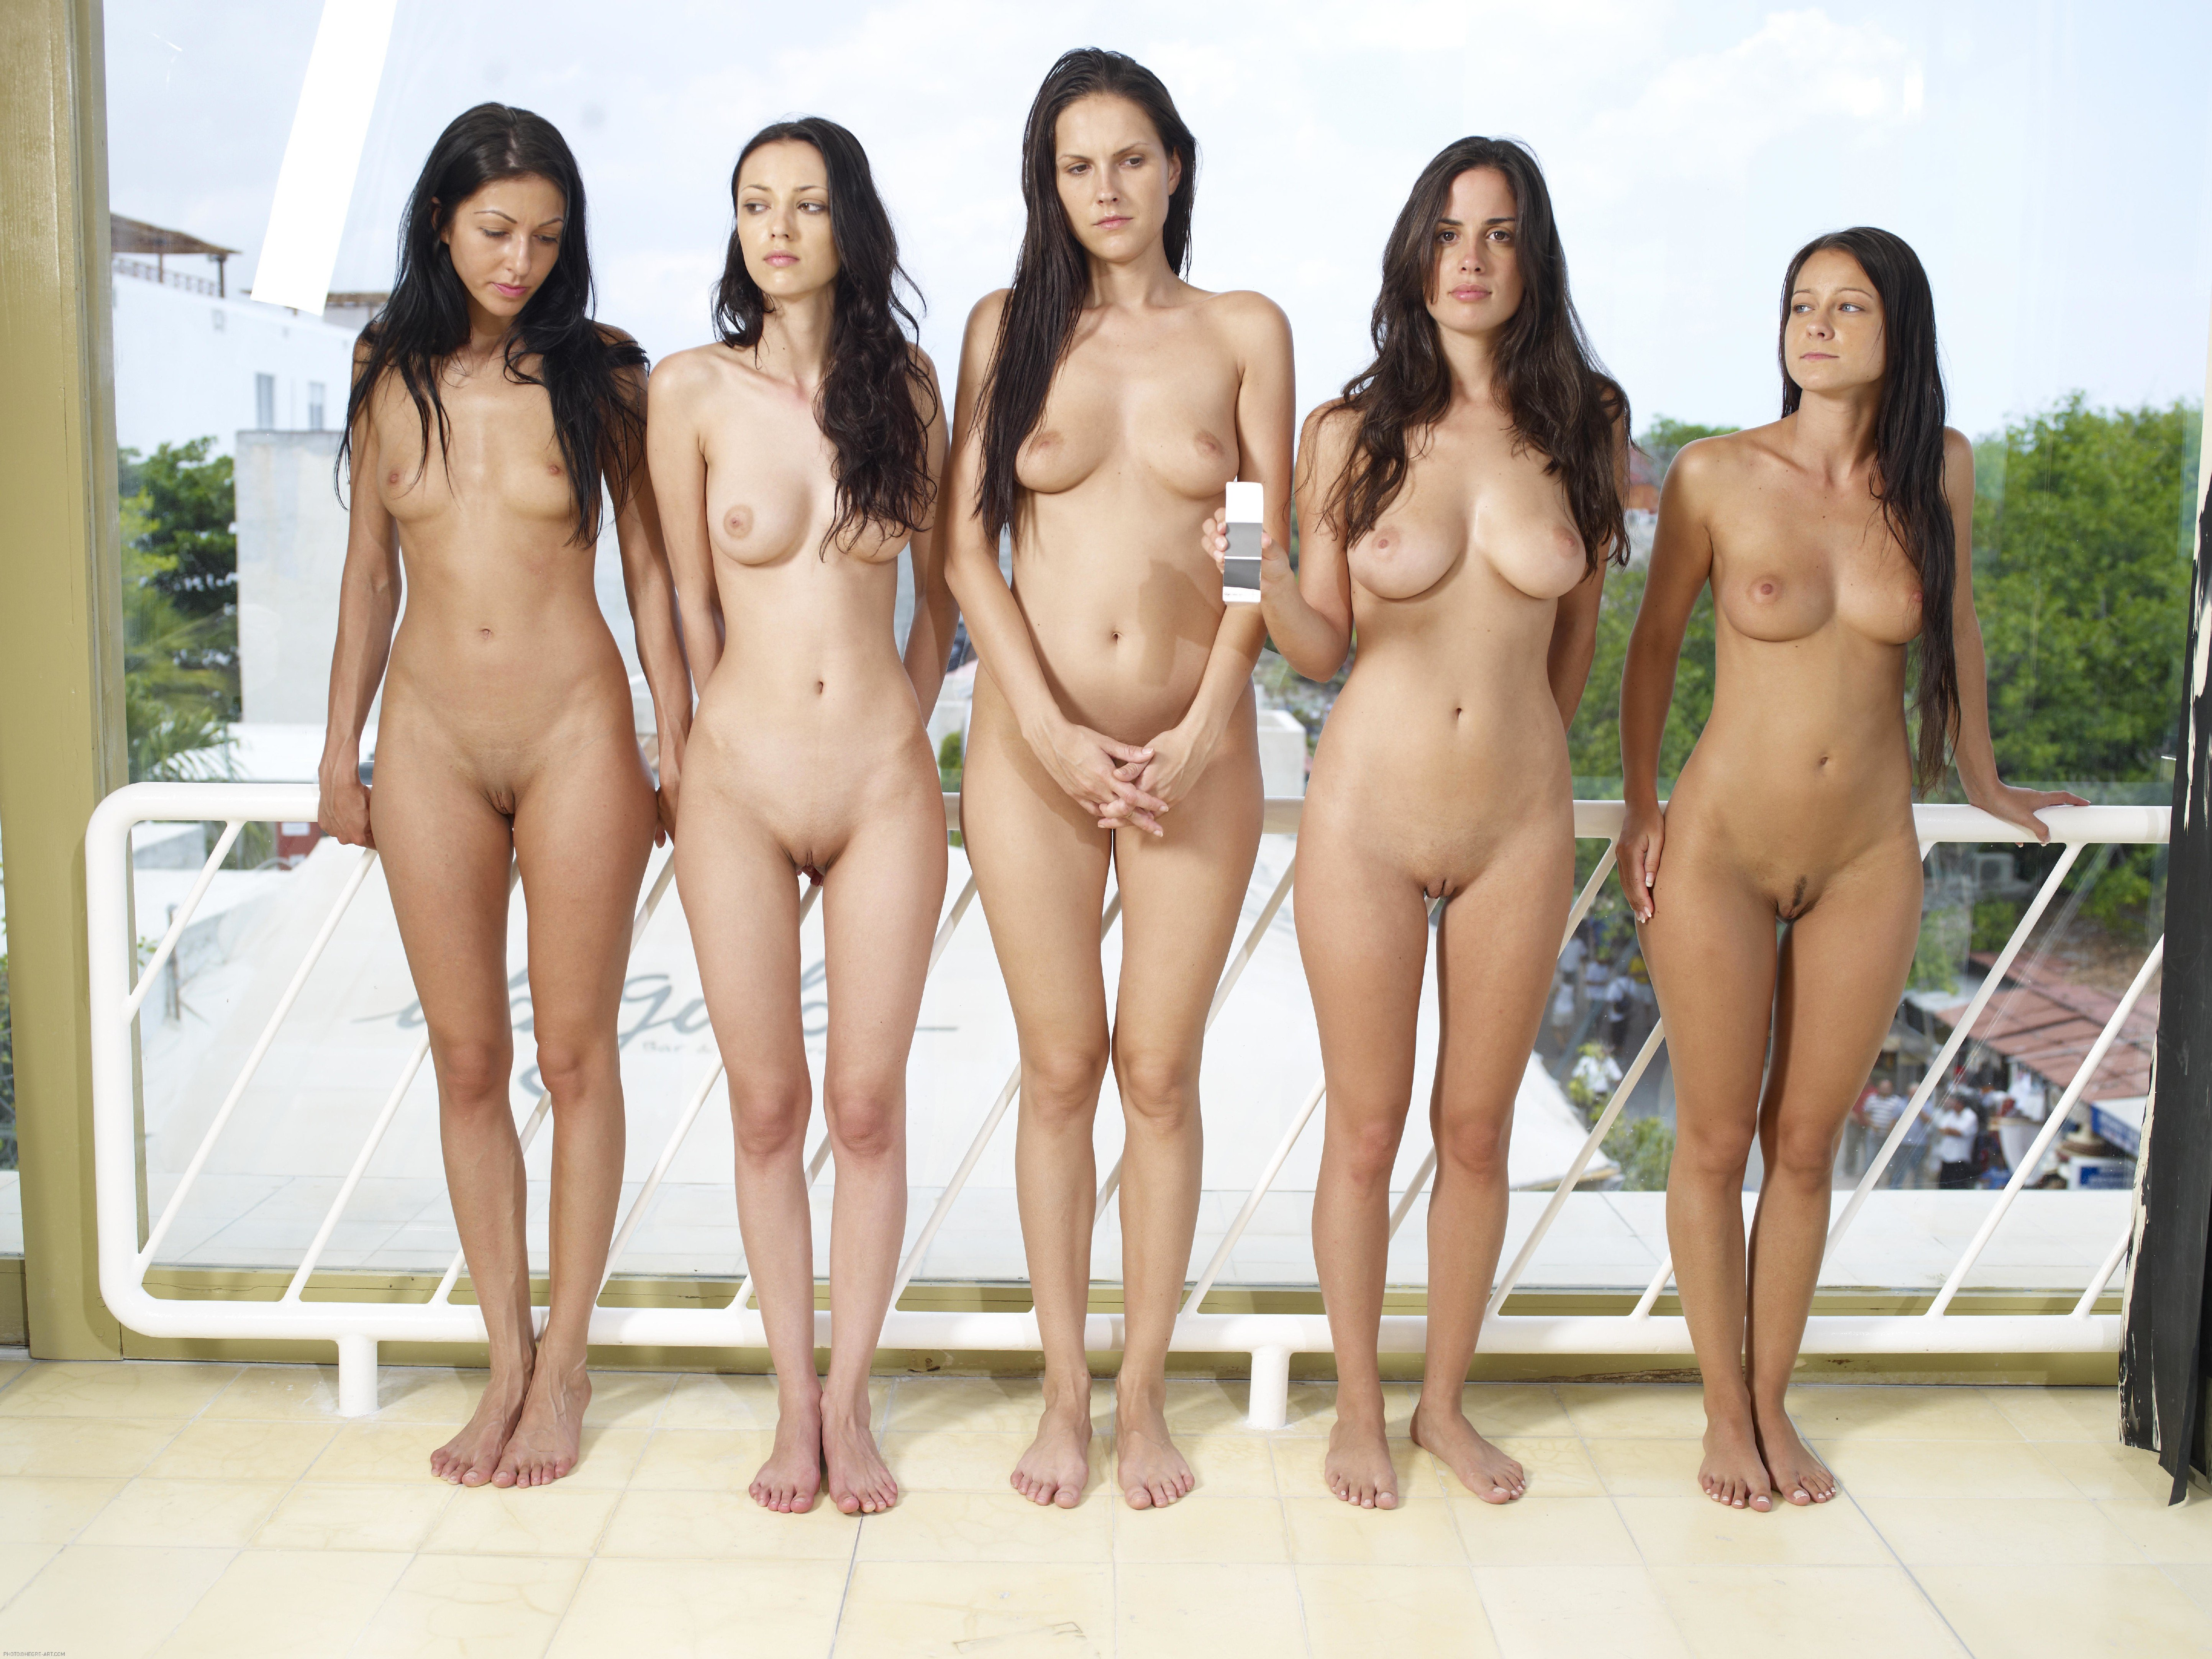 Groups Of Nude Girls